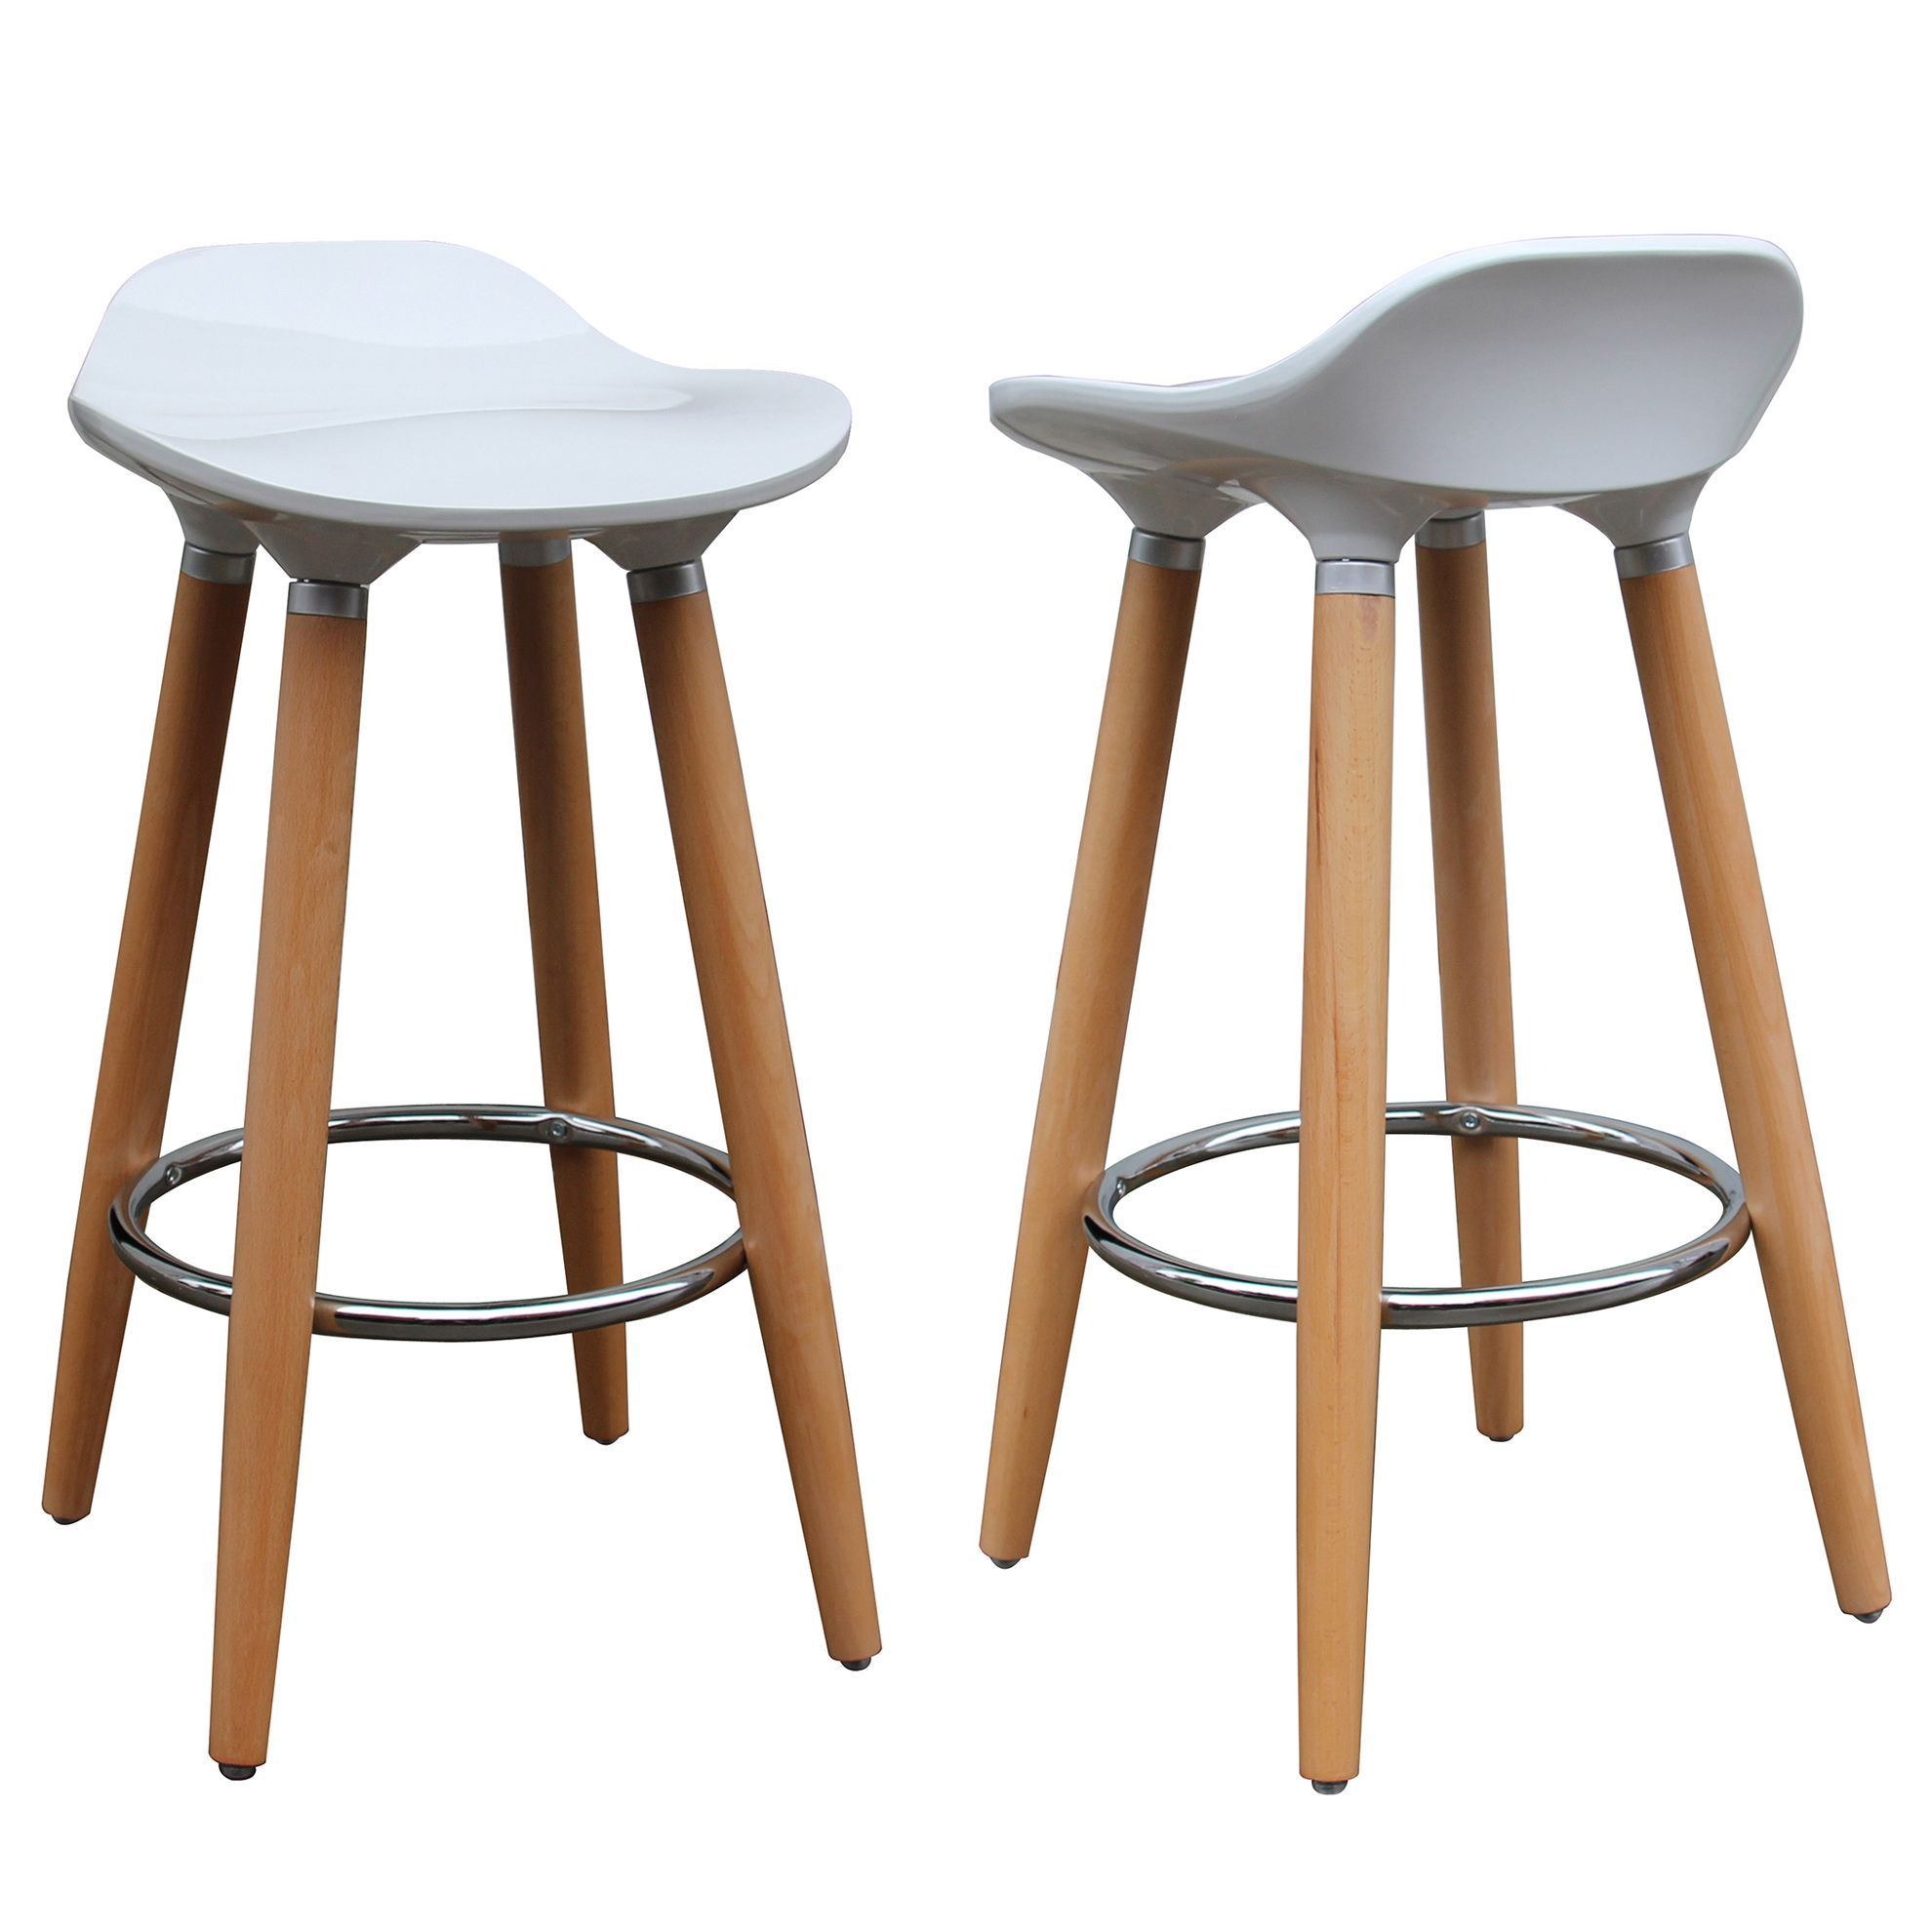 Each Stool Has A White, ABS Plastic Seat And Naturally